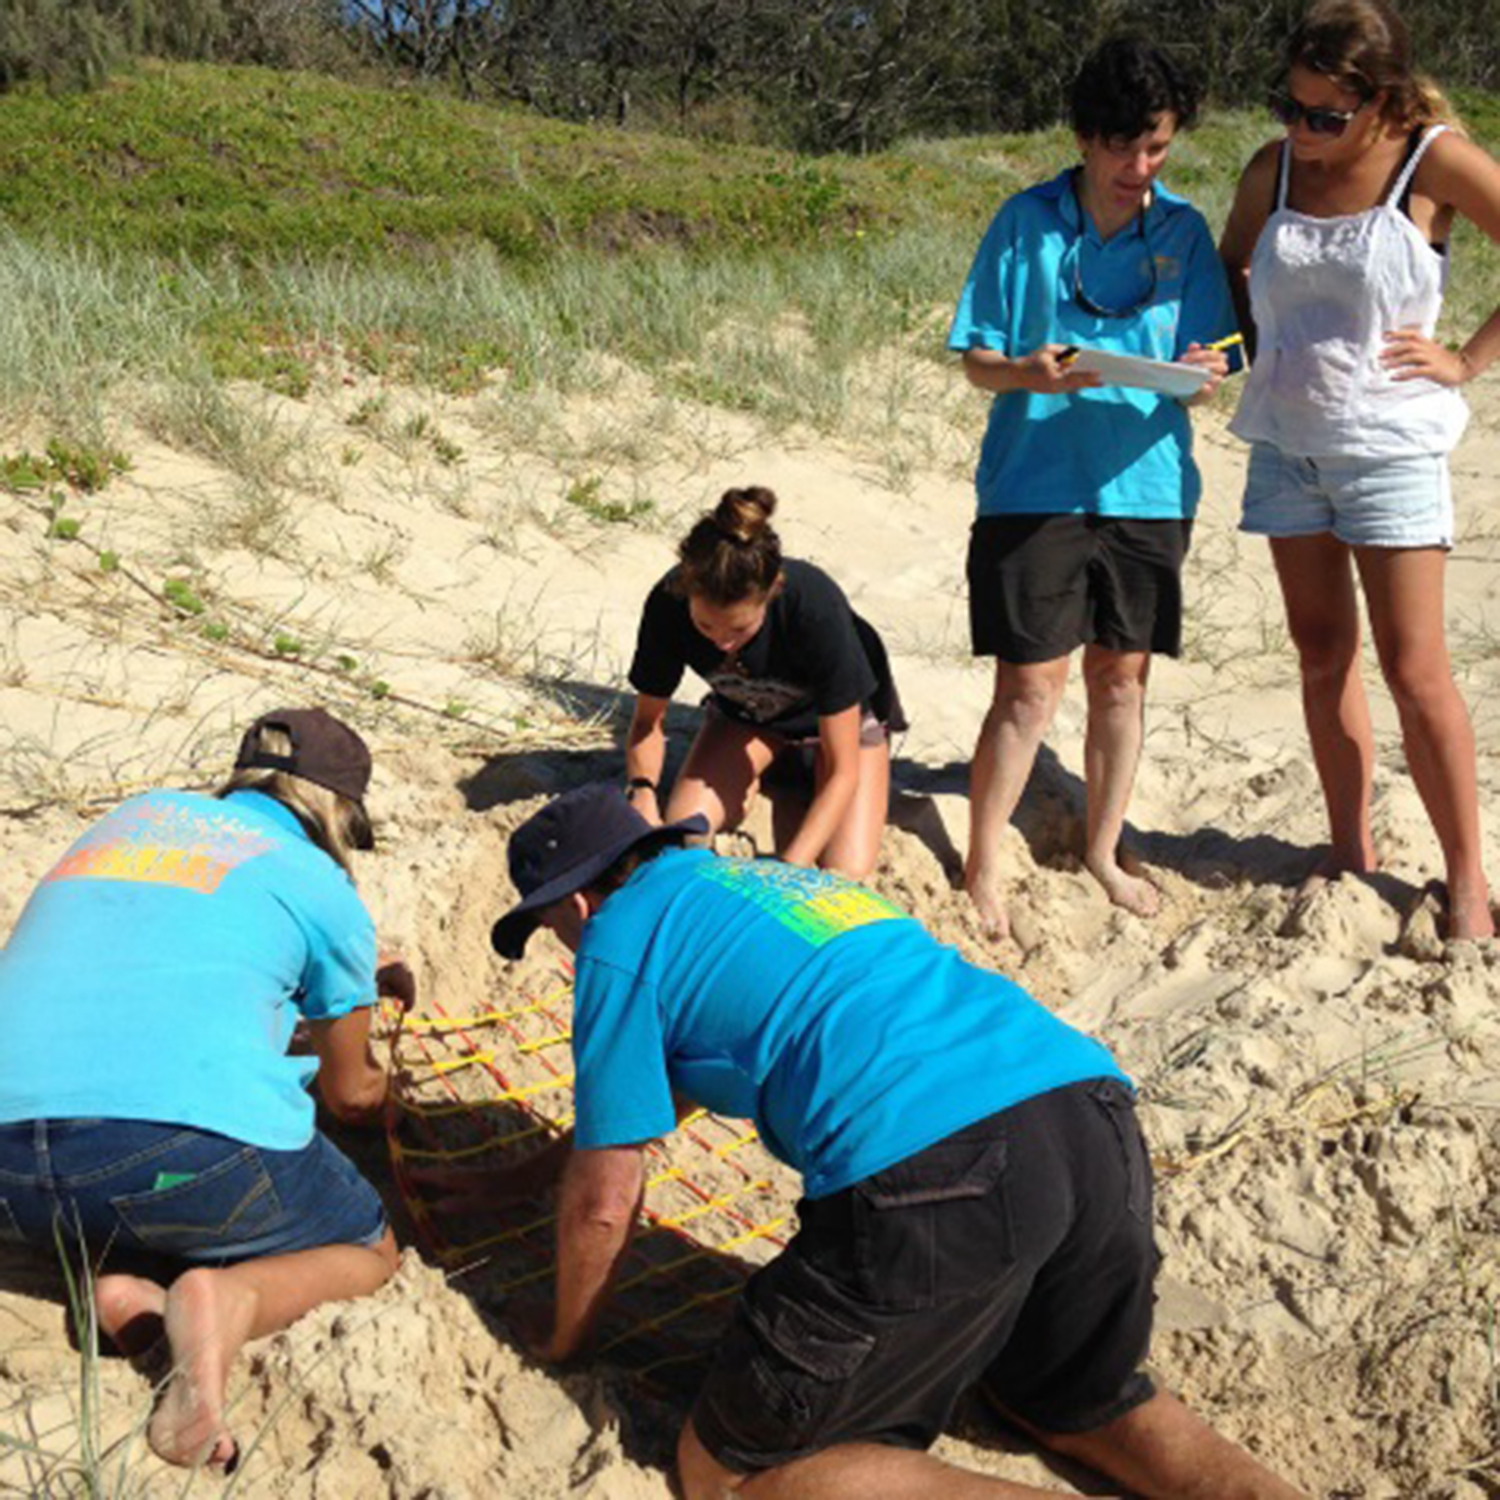 USC graduate Ilana Kelly doing fieldwork at a nesting site with volunteers from Coolum & North Shore Coast Care.